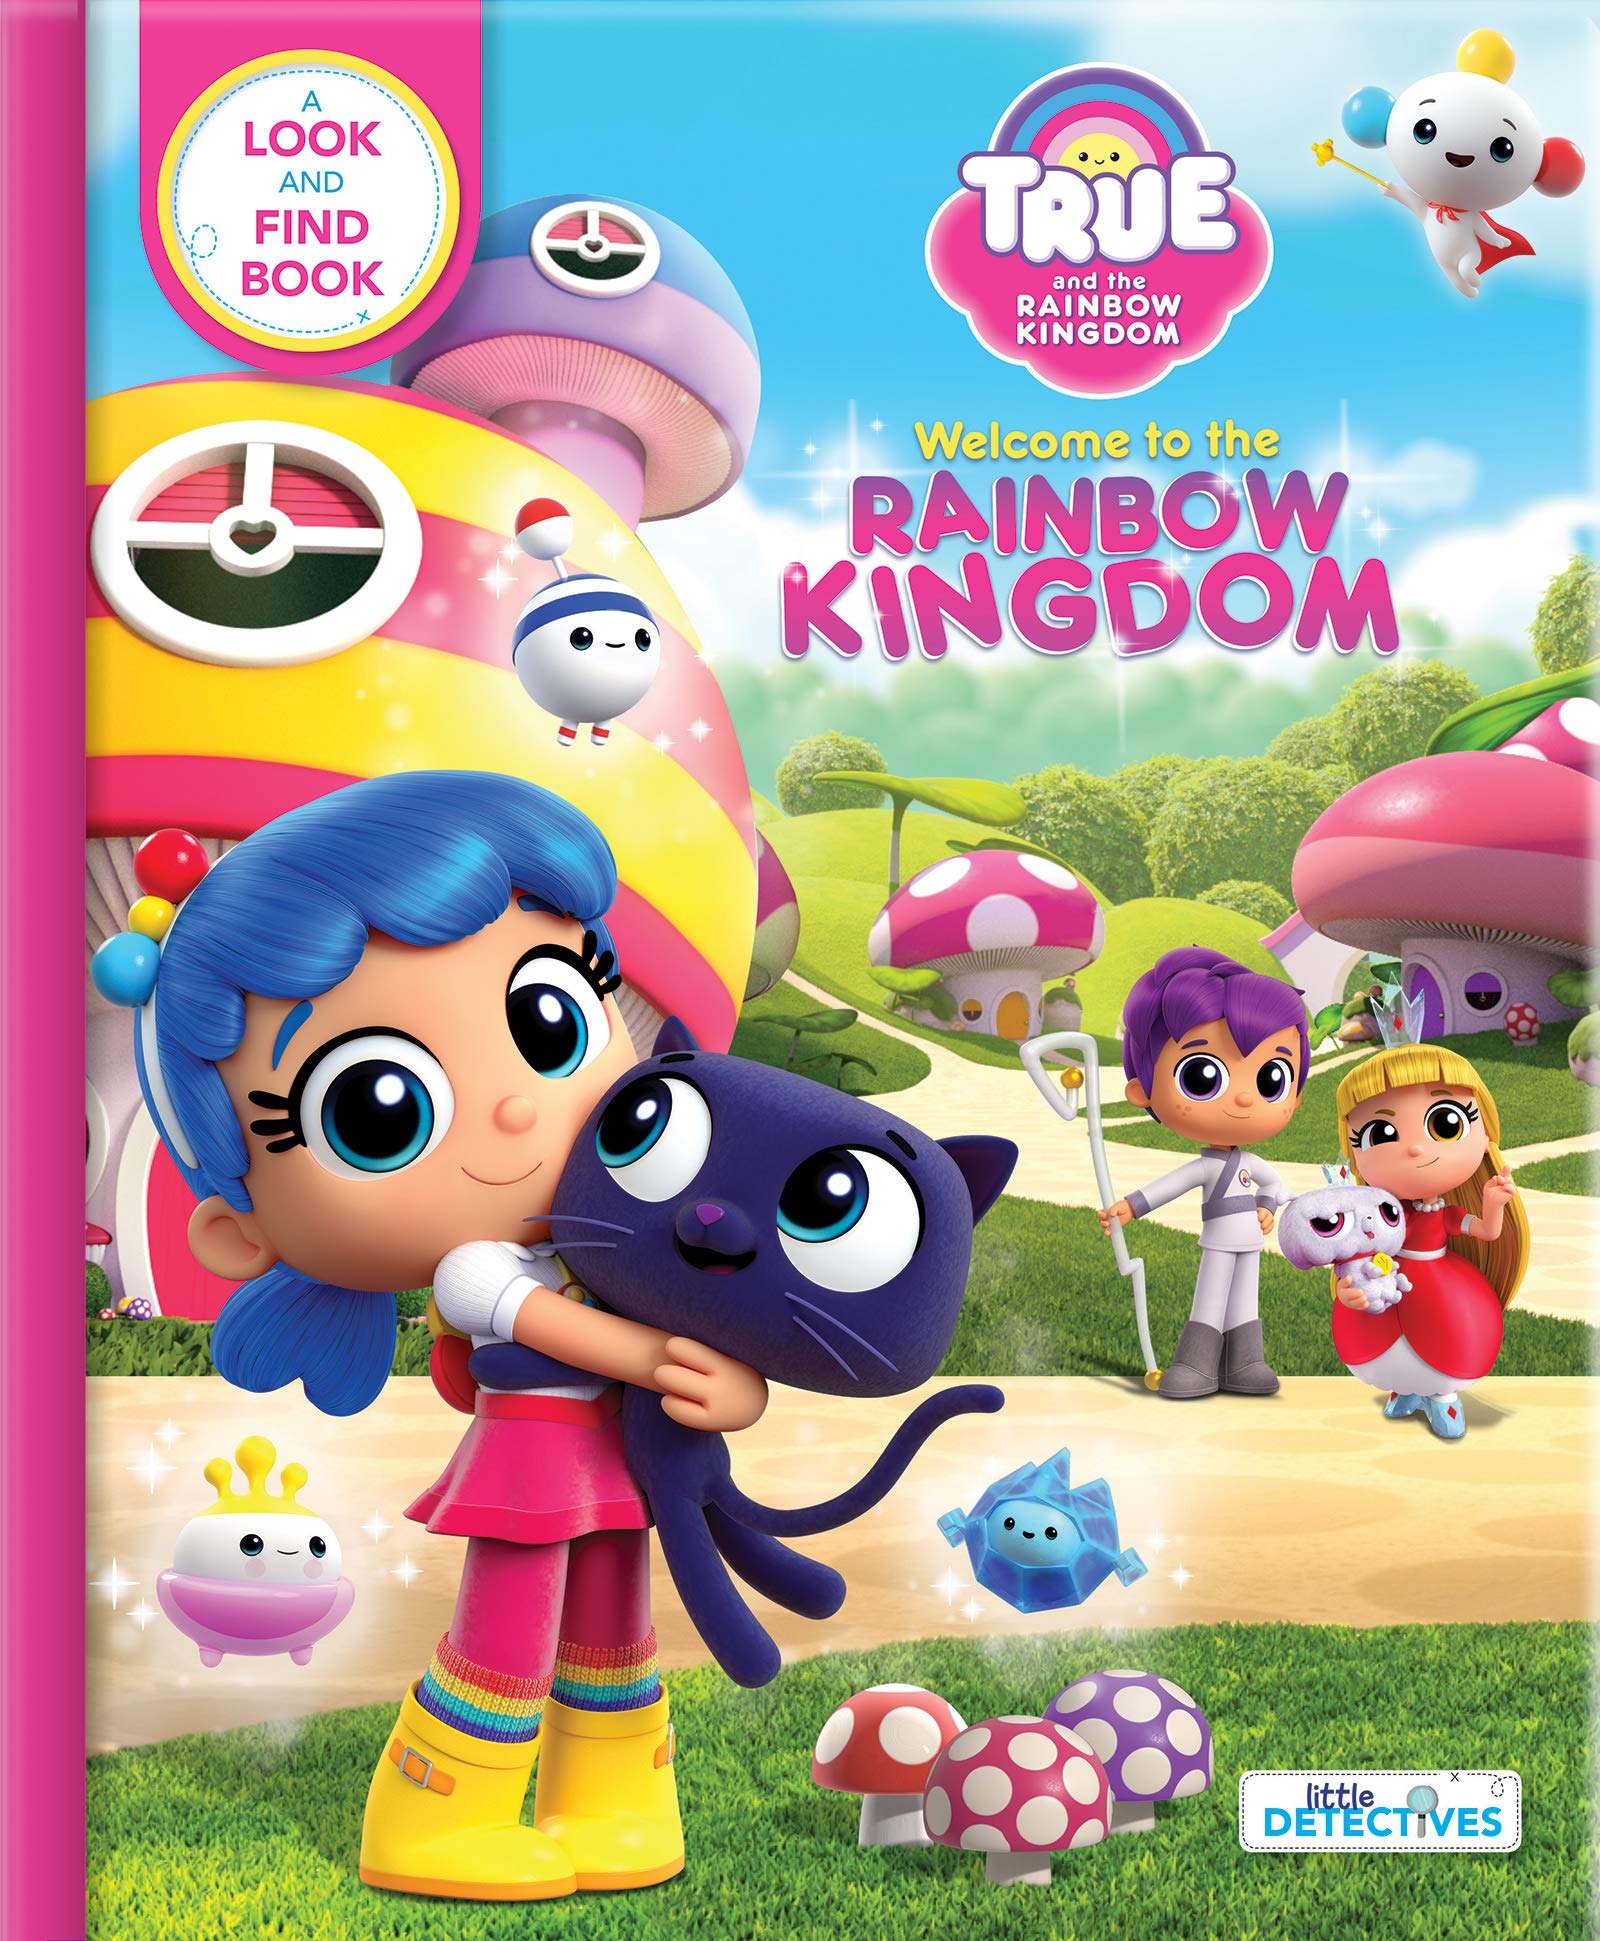 Amazon Com True And The Rainbow Kingdom Welcome To The Rainbow Kingdom Little Detectives A Search And Find Book True And The Rainbow Kingdom Little Detectives 9782898020407 Guru Animation Studio Ltd Paradis Anne